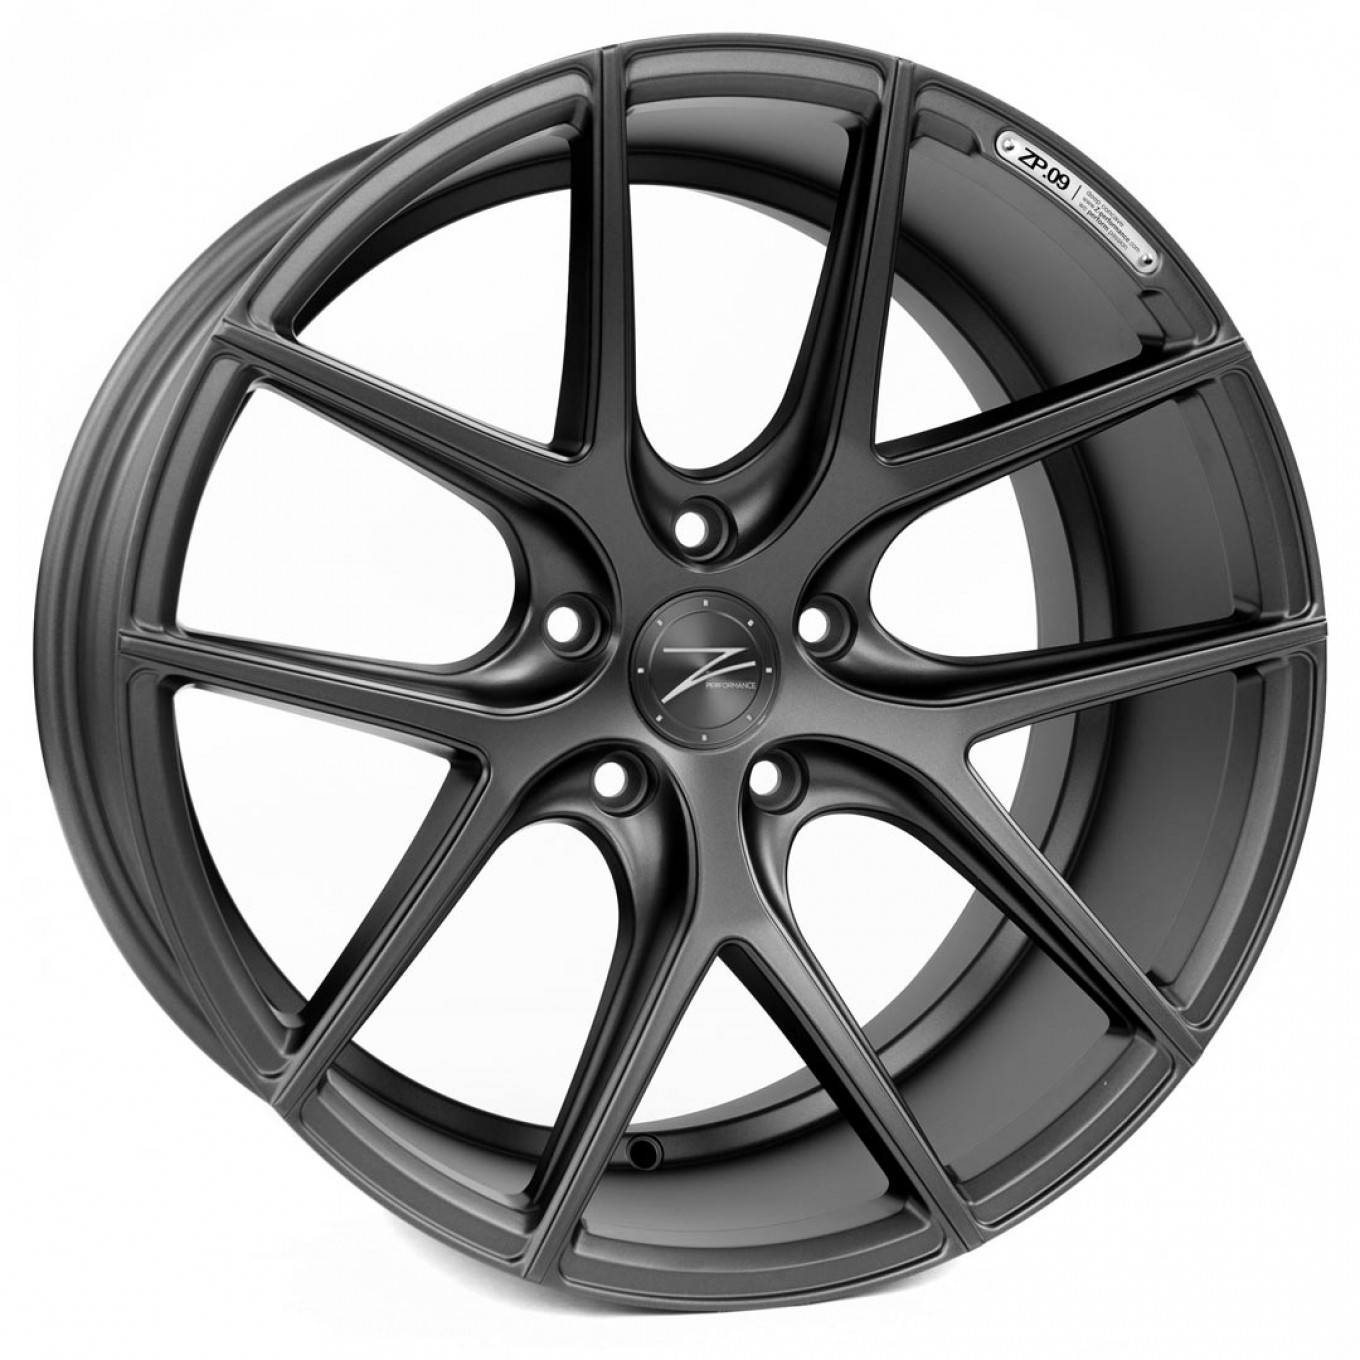 ZP.09 Deep Concave | Matte Black Custom Finish Pulverbeschichtung